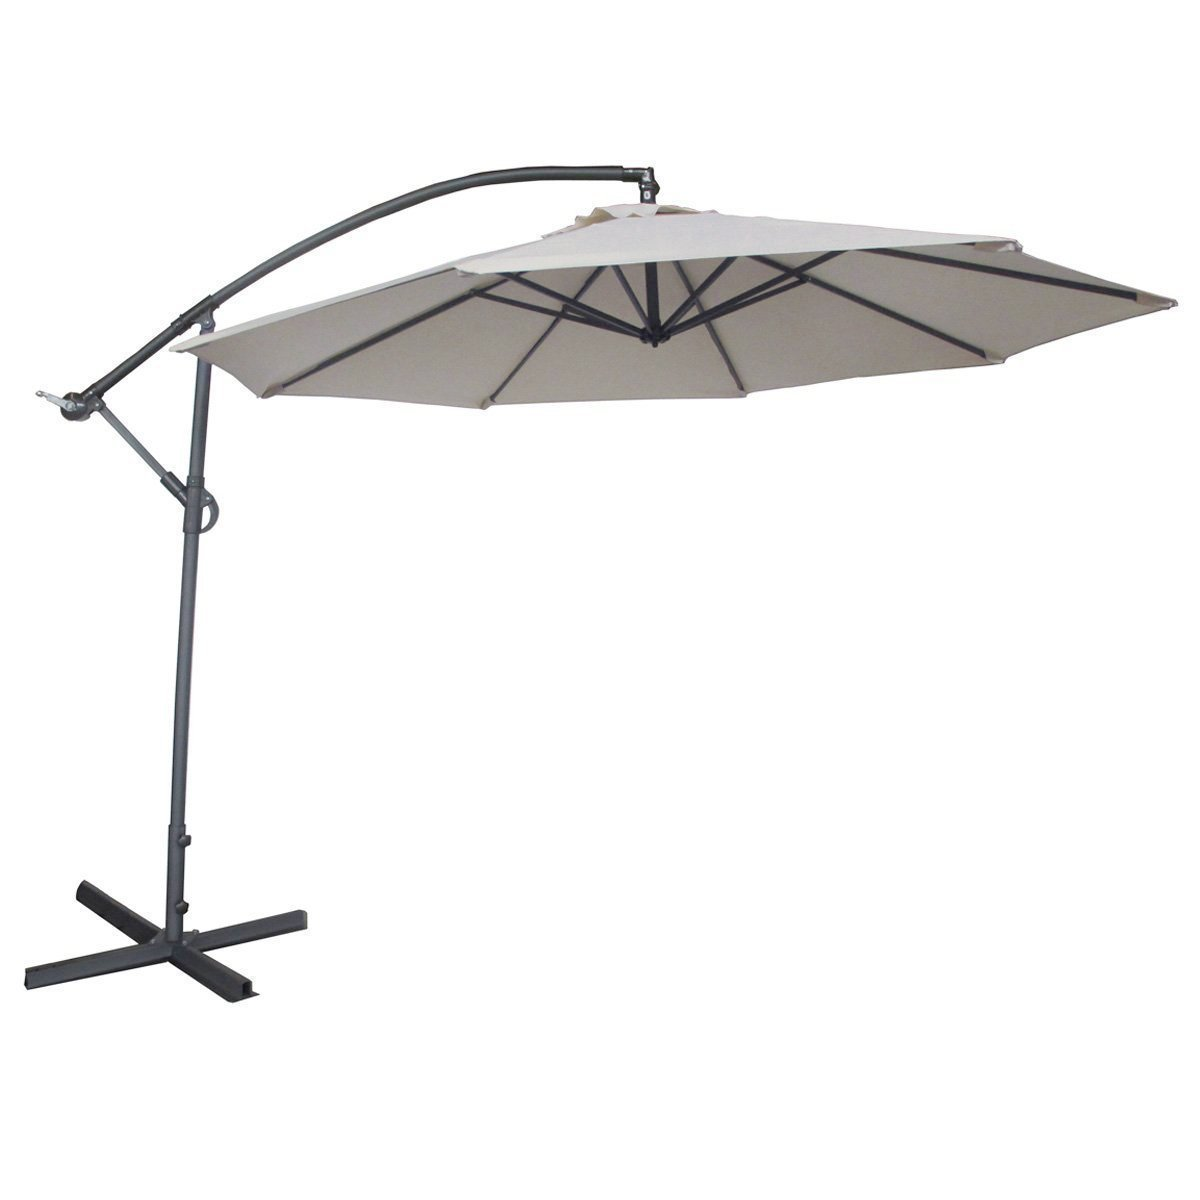 Image of Abba Patio 10-Ft Offset Cantilever Hanging Patio Umbrella with Base, Easy Crank Operation, 8 Ribs, Air Vented Top, Ivory